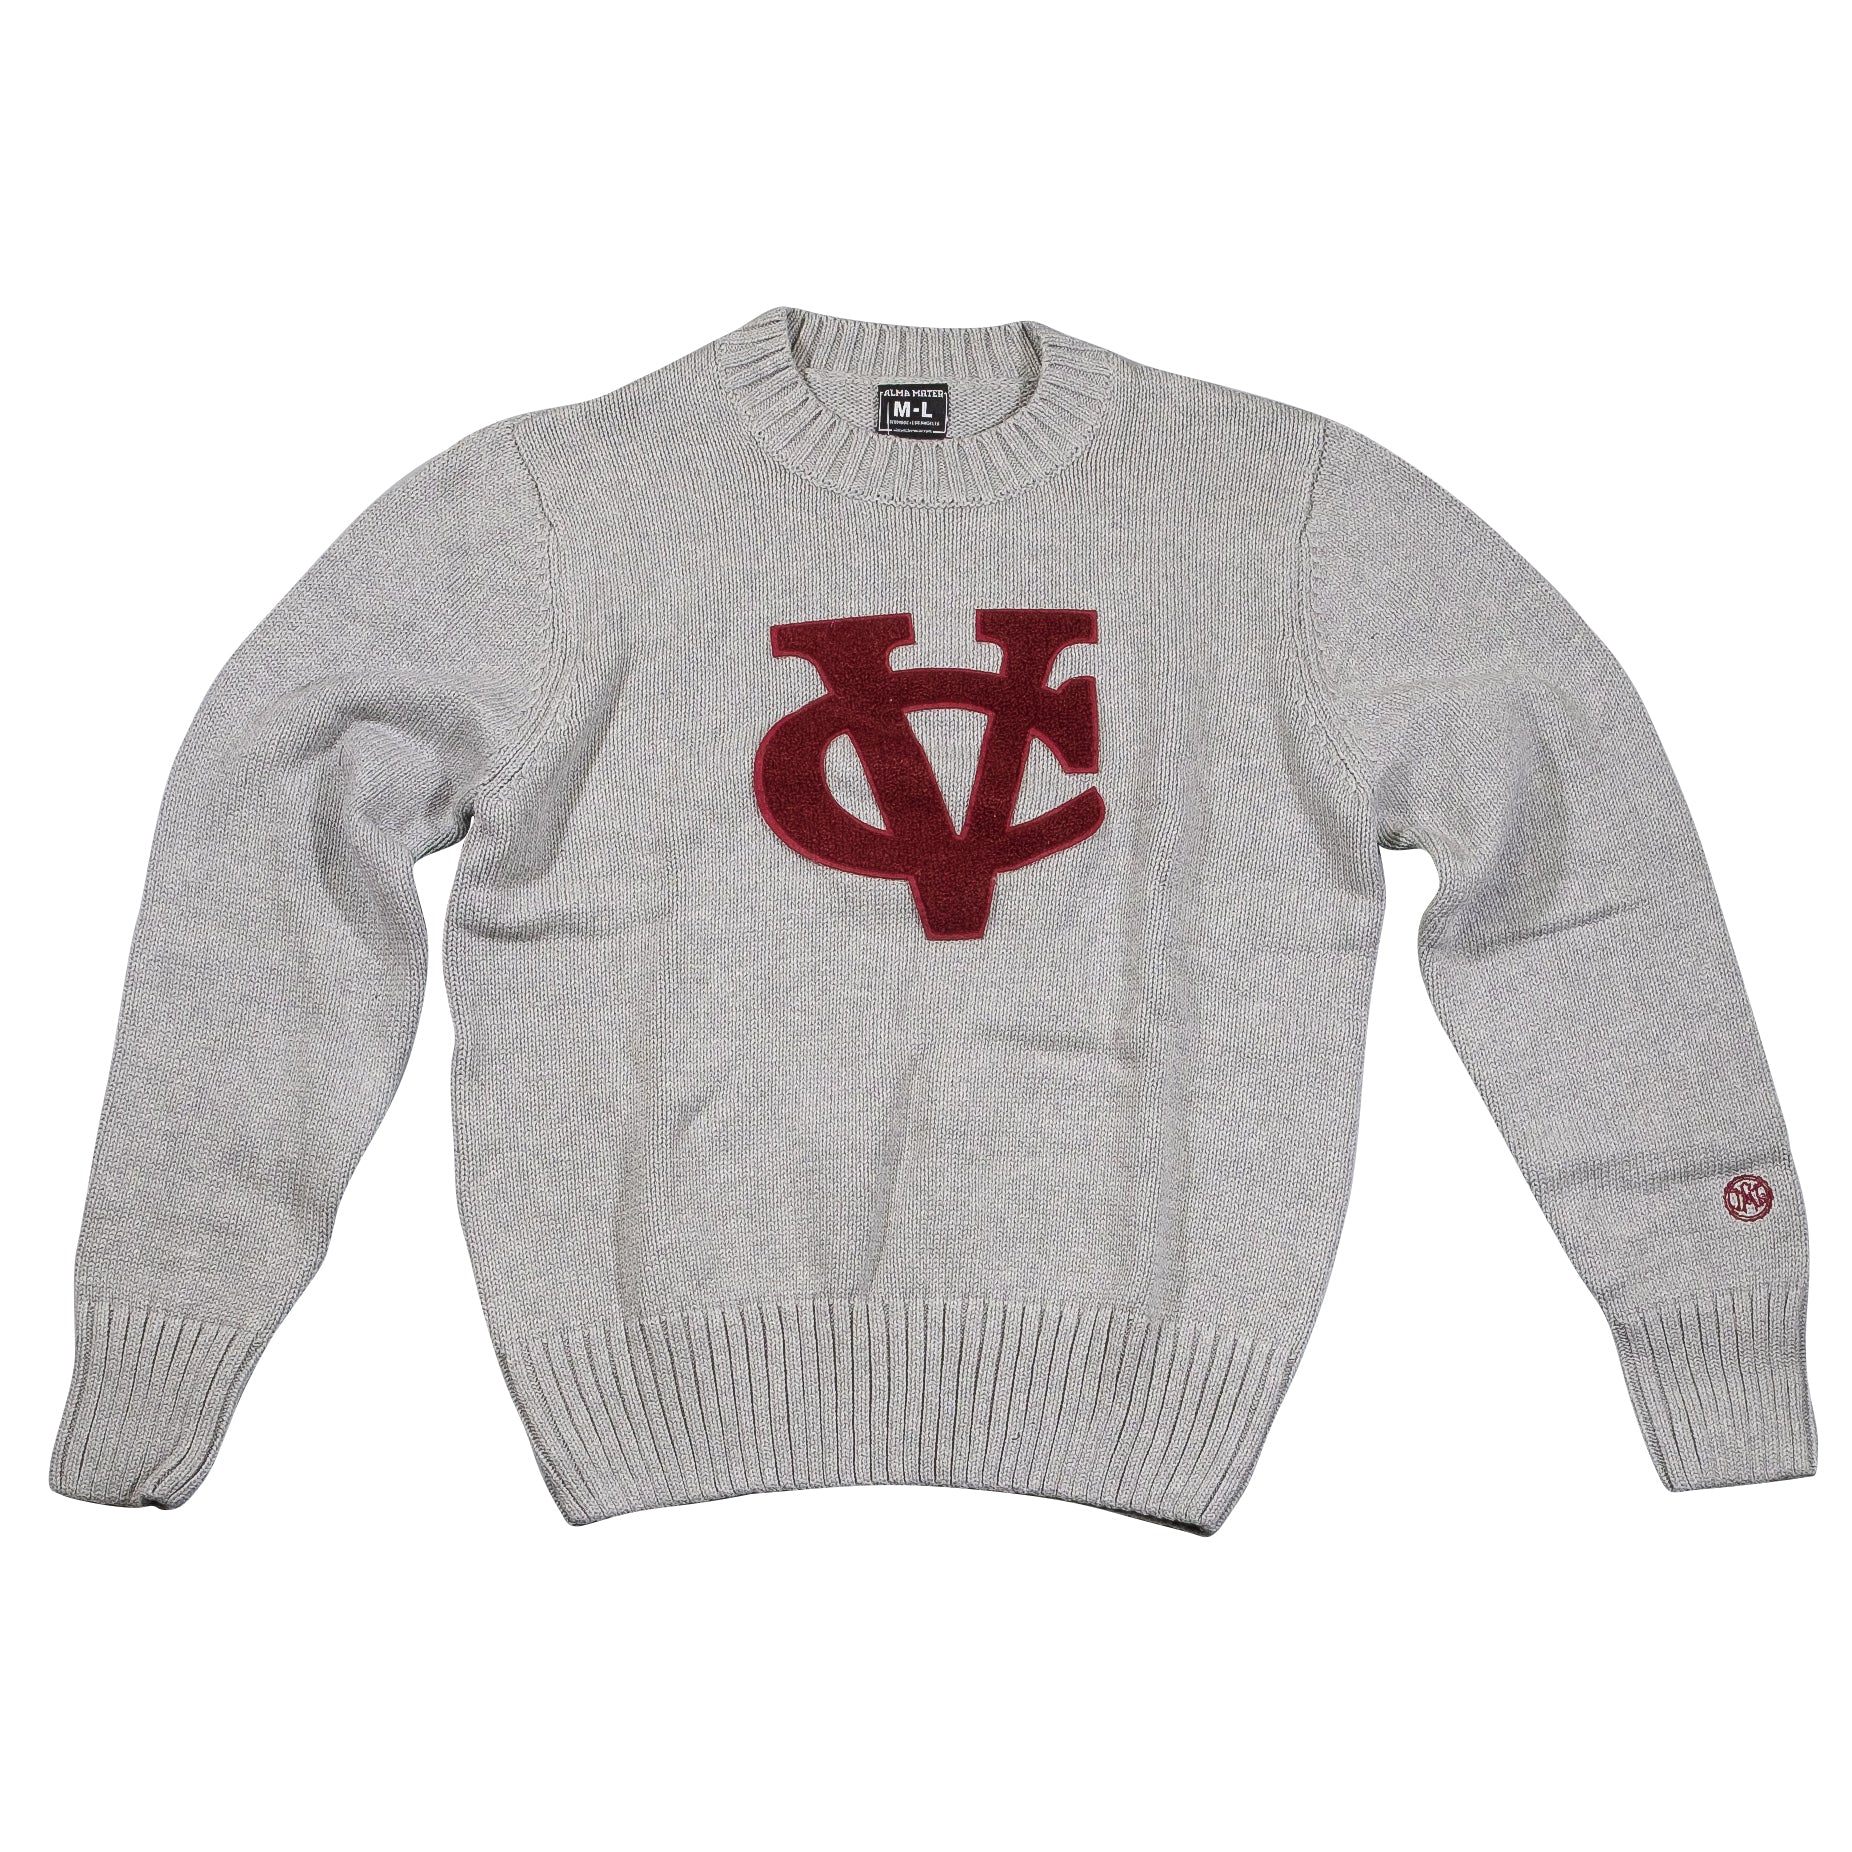 VASSAR COLLEGE Men's Crew Neck Sweater